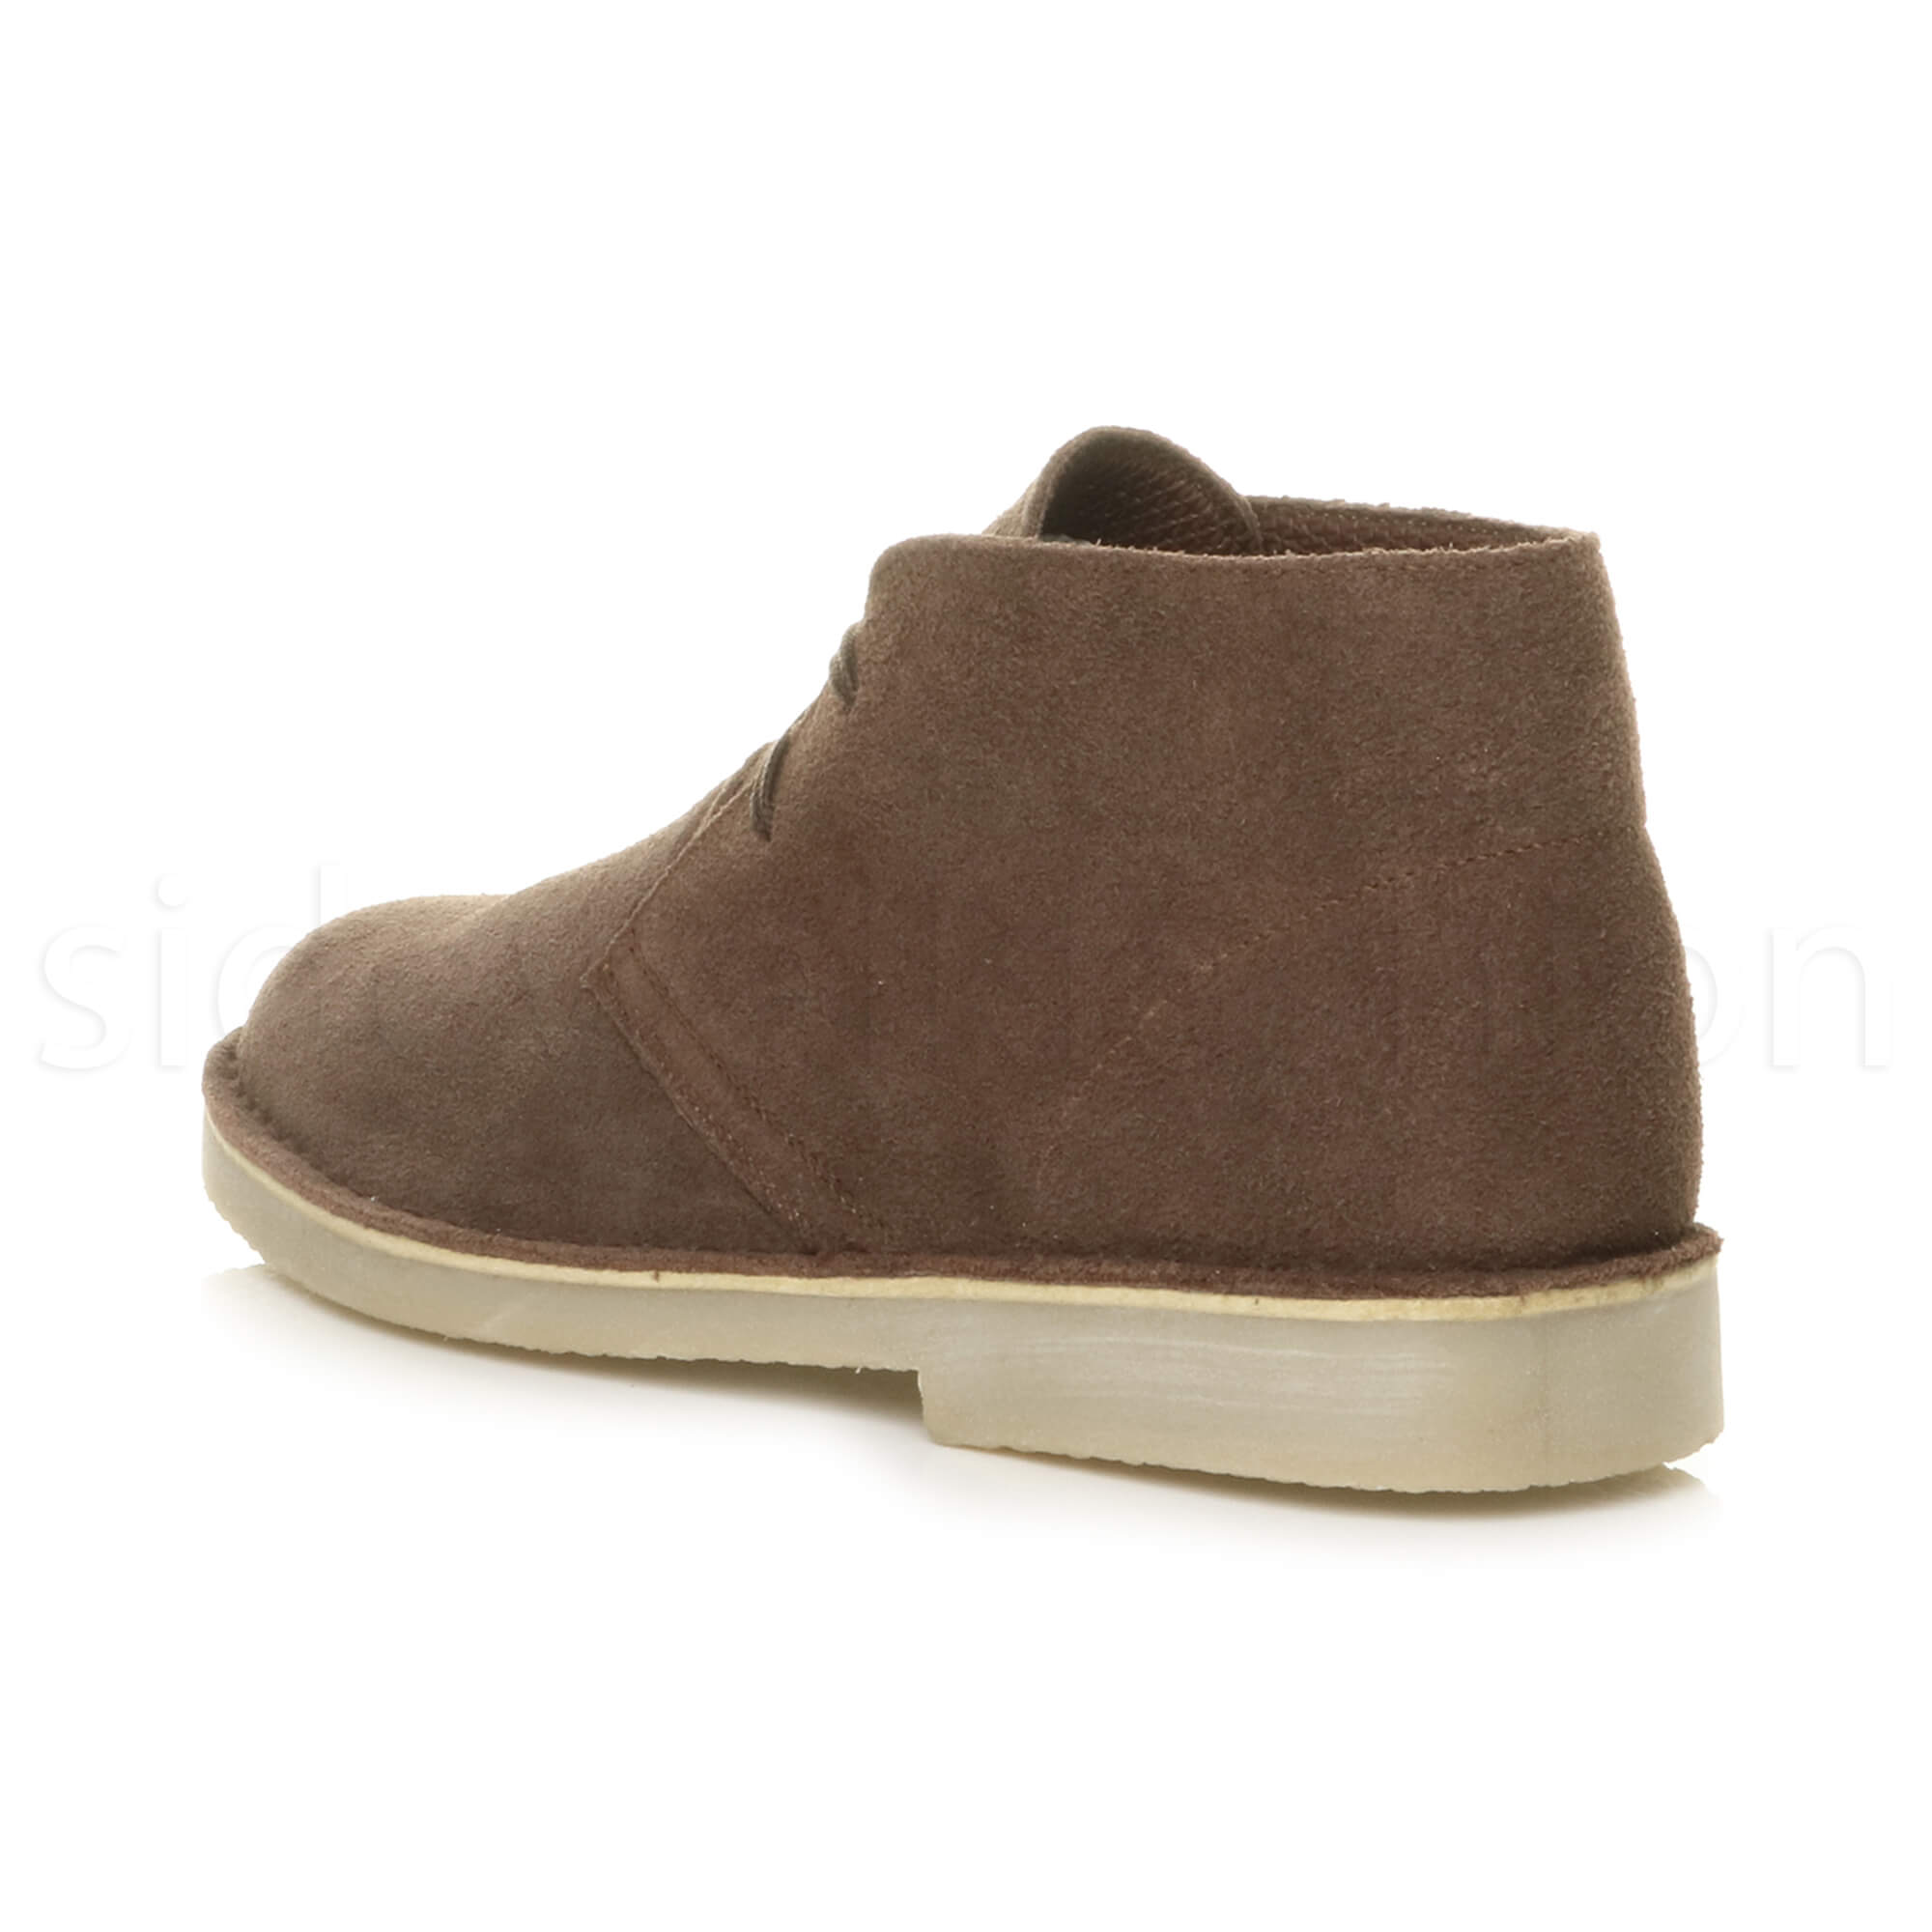 Mens-lace-up-rubber-sole-suede-ankle-chukka-desert-boots-classic-shoes-size thumbnail 12